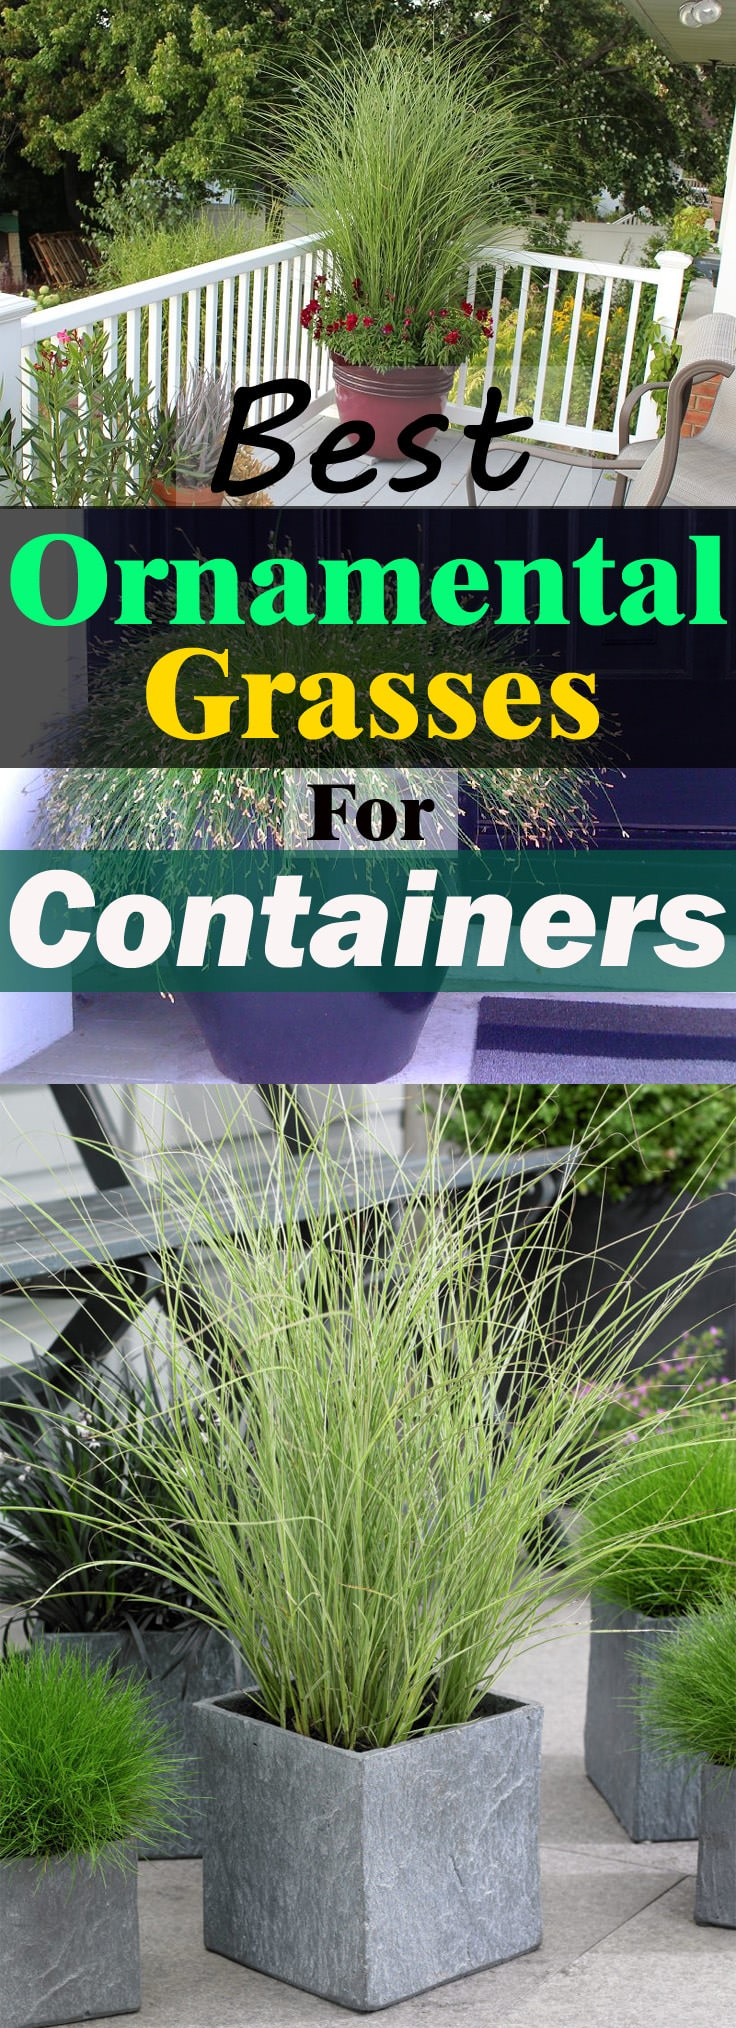 Zone 5 Ornamental Grasses Best ornamental grasses for containers growing ornamental grass growing ornamental grasses is fun you can decorate your house garden balcony or workwithnaturefo